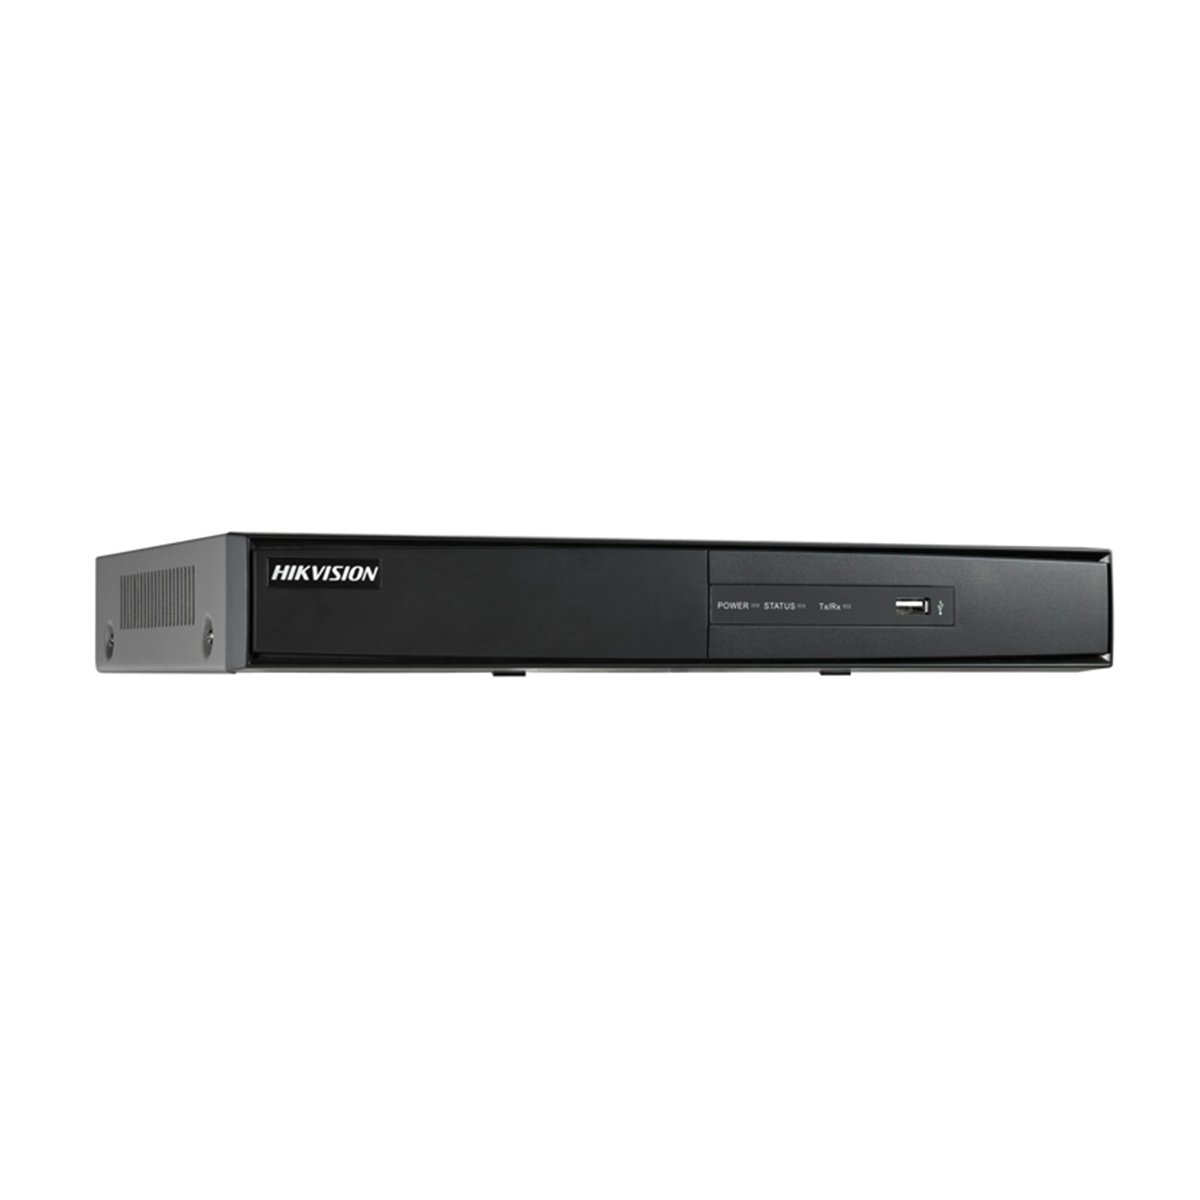 Hikvision 16-Channel TurboHD DVR with Two-Way Audio | DS-7216HQHI-F2/N